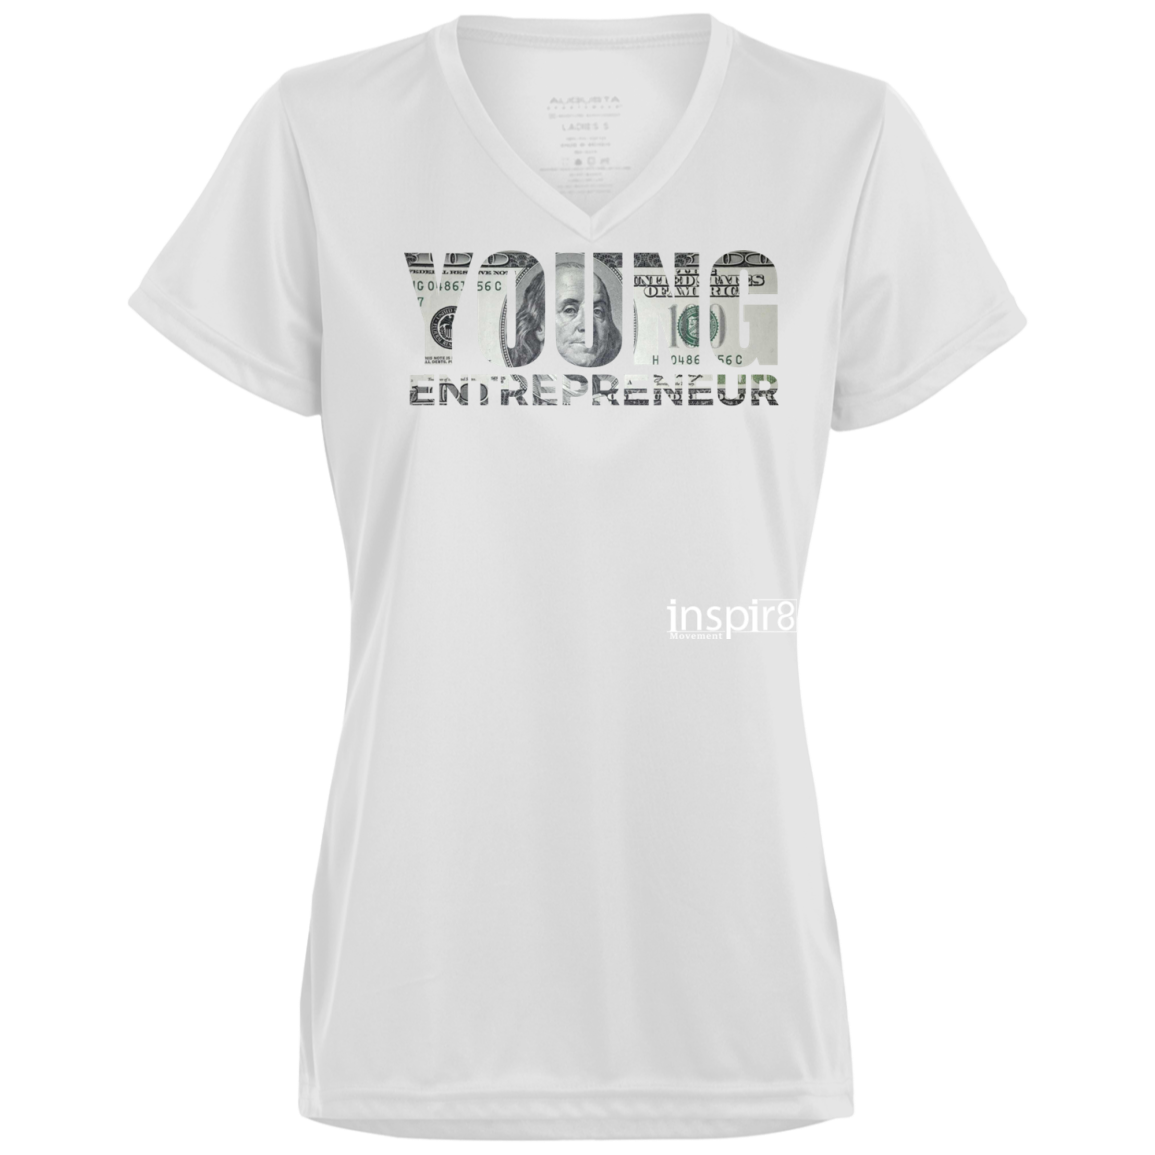 Ladies' V-Neck T-Shirt - inspirational and motivational clothing